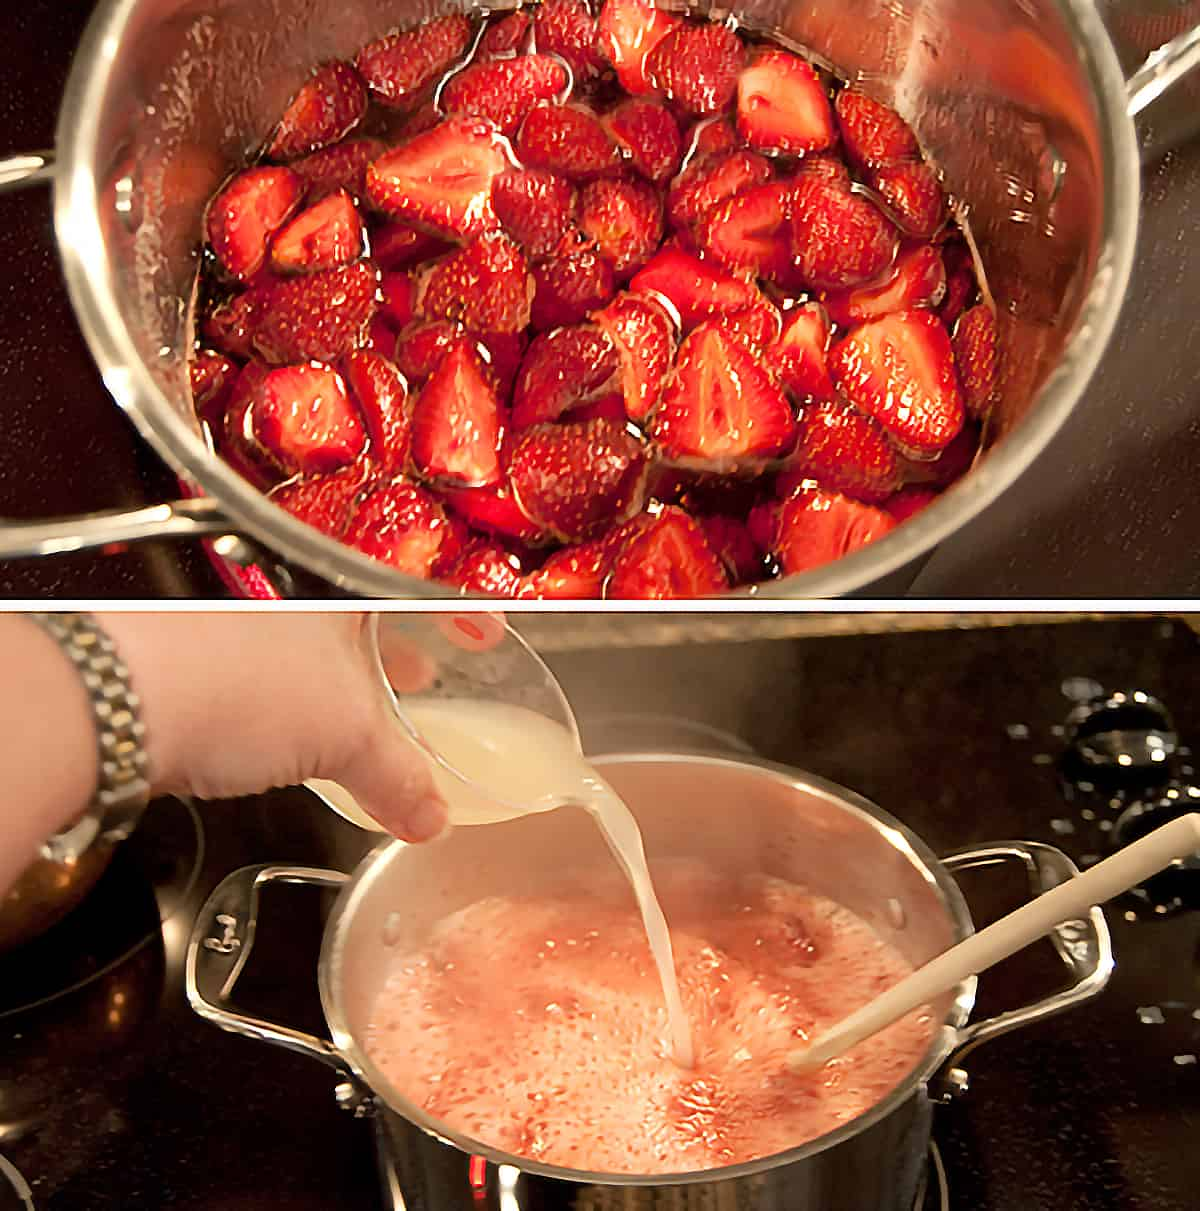 Adding lemon juice to the berries and sugar.